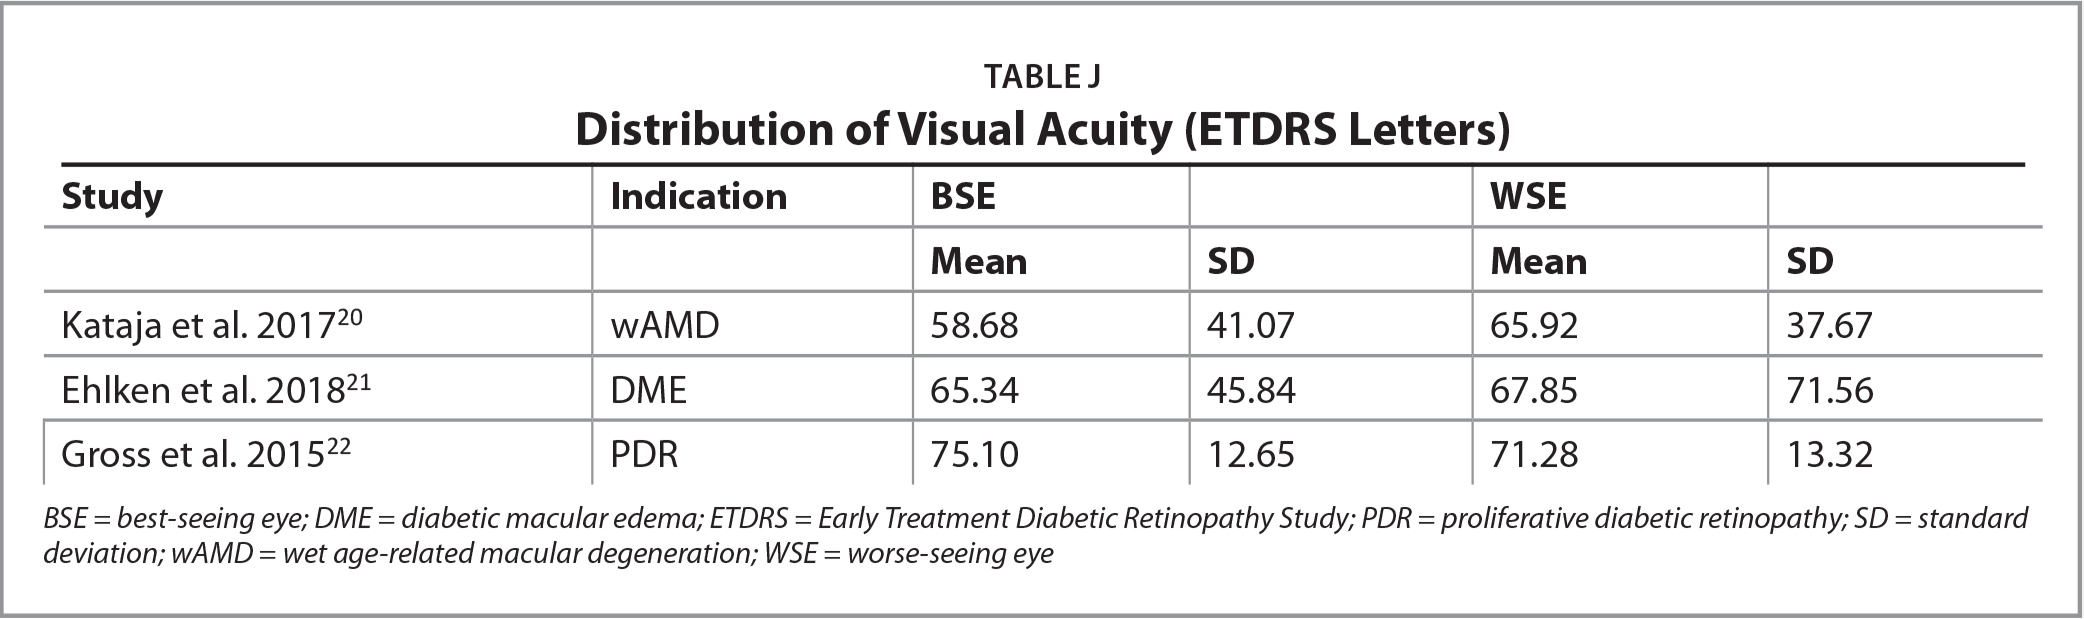 Distribution of Visual Acuity (ETDRS Letters)